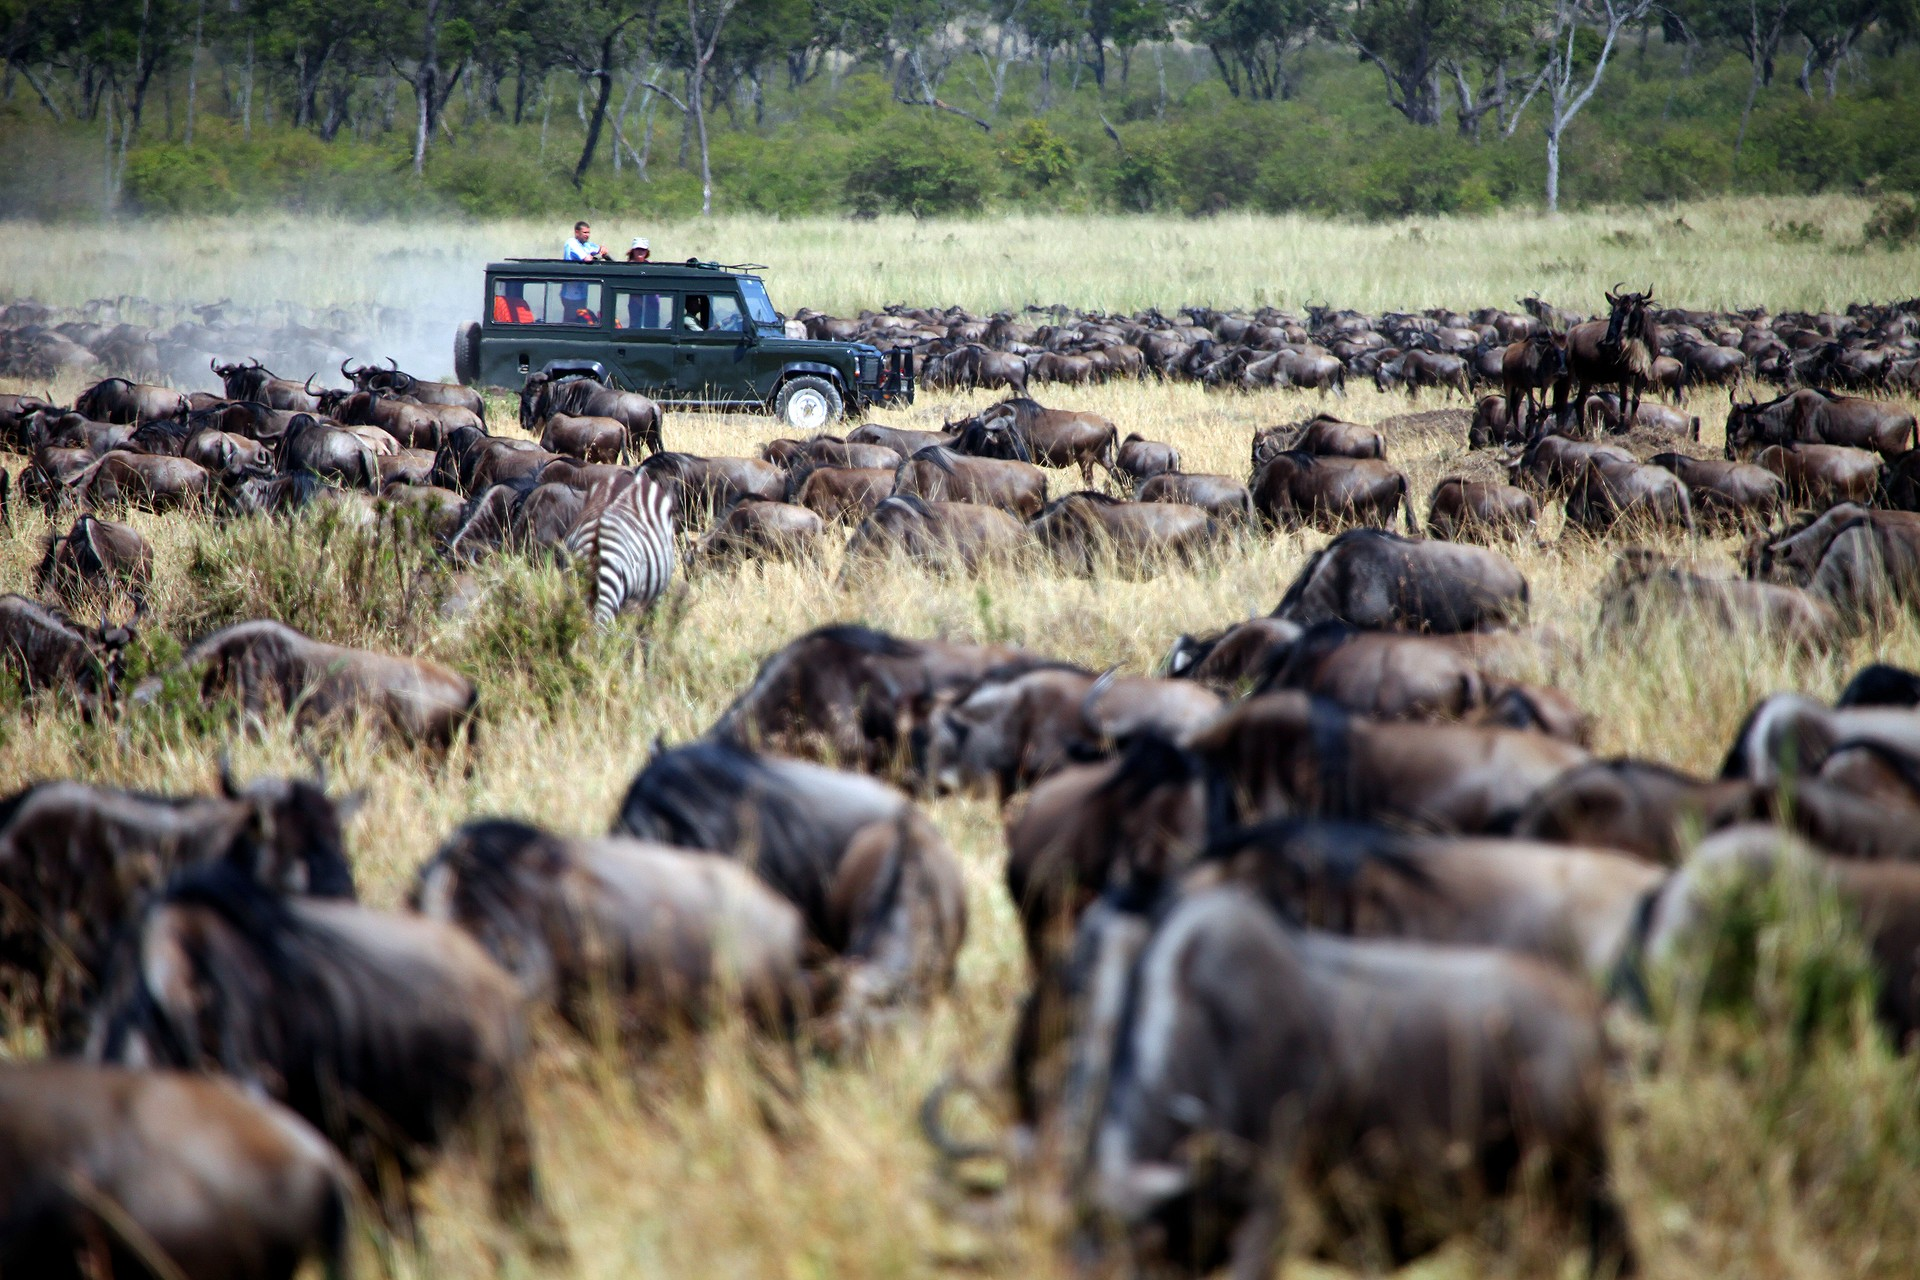 Wildebeest migrating across the Masai Mara in Kenya